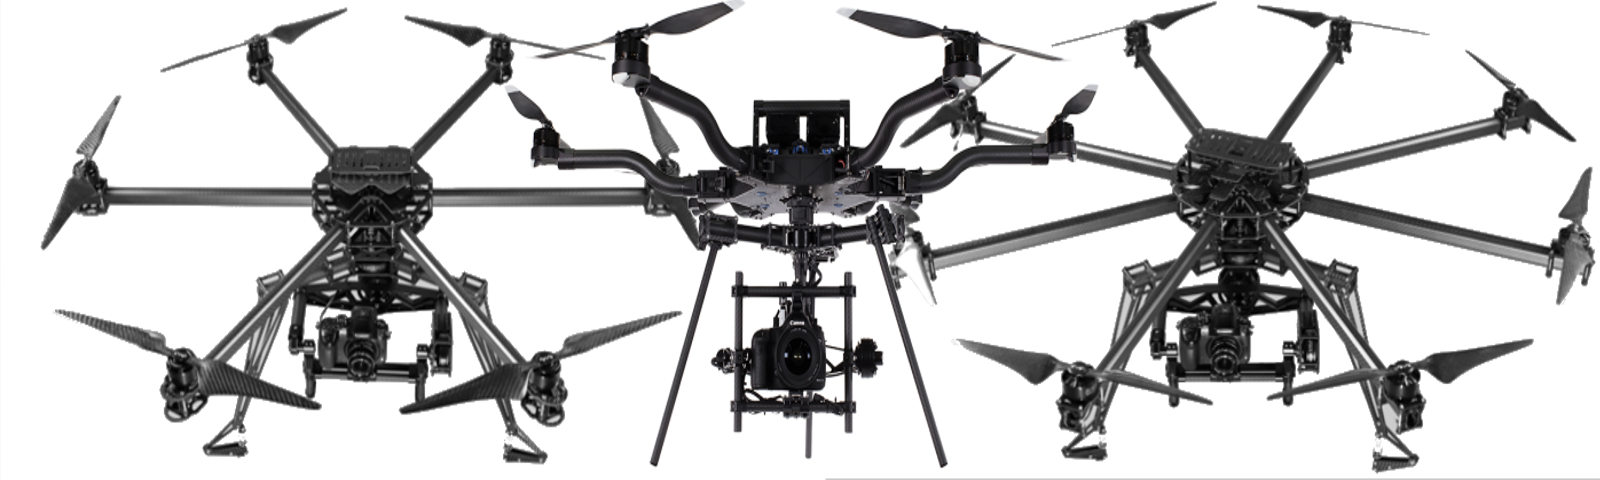 Aerial Photography CUSTOM UAS Kits